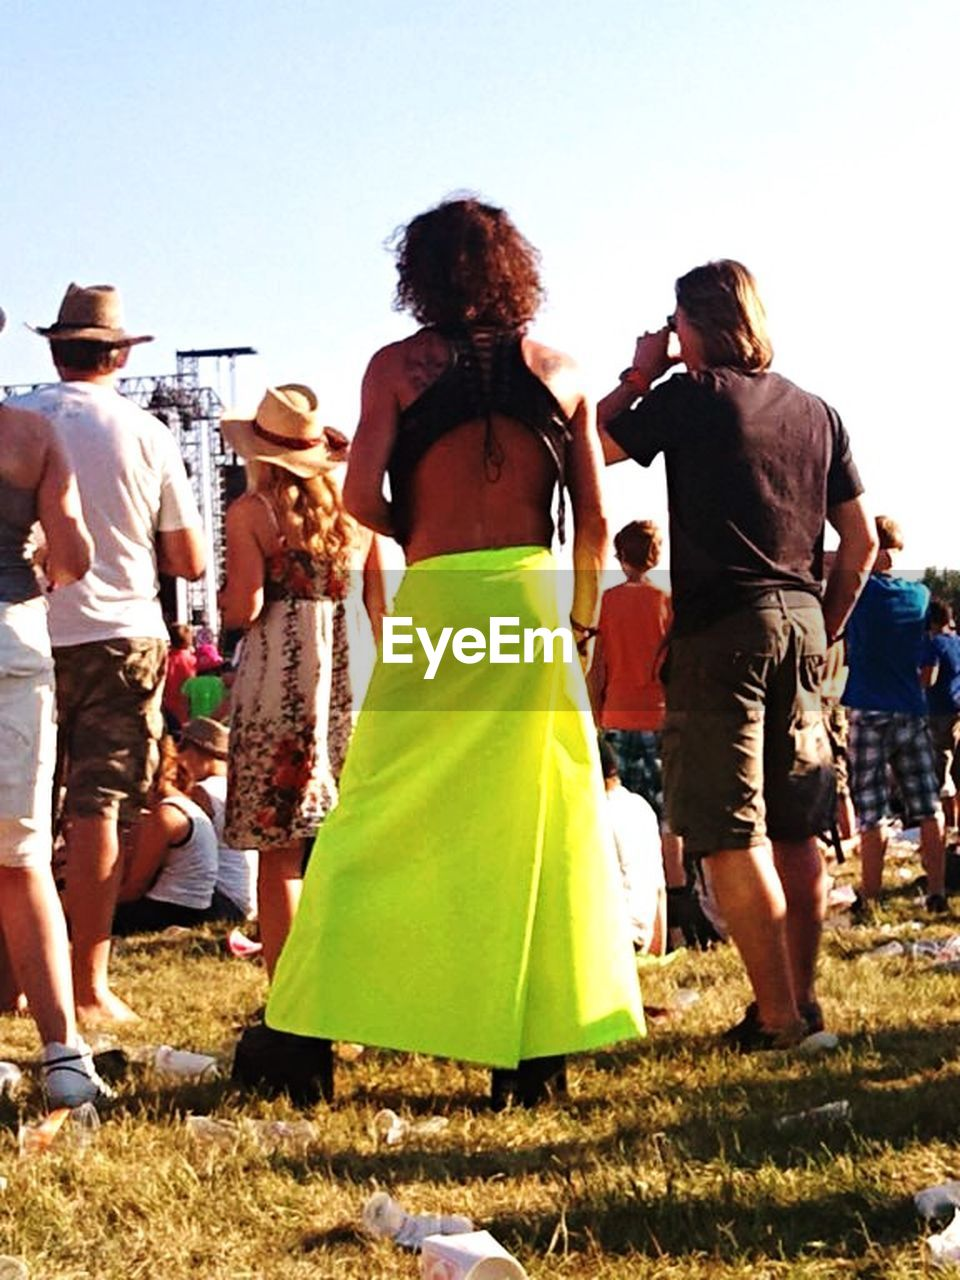 rear view, full length, leisure activity, real people, casual clothing, lifestyles, women, celebration, men, large group of people, togetherness, enjoyment, outdoors, day, life events, clear sky, standing, grass, sky, bride, adult, people, adults only